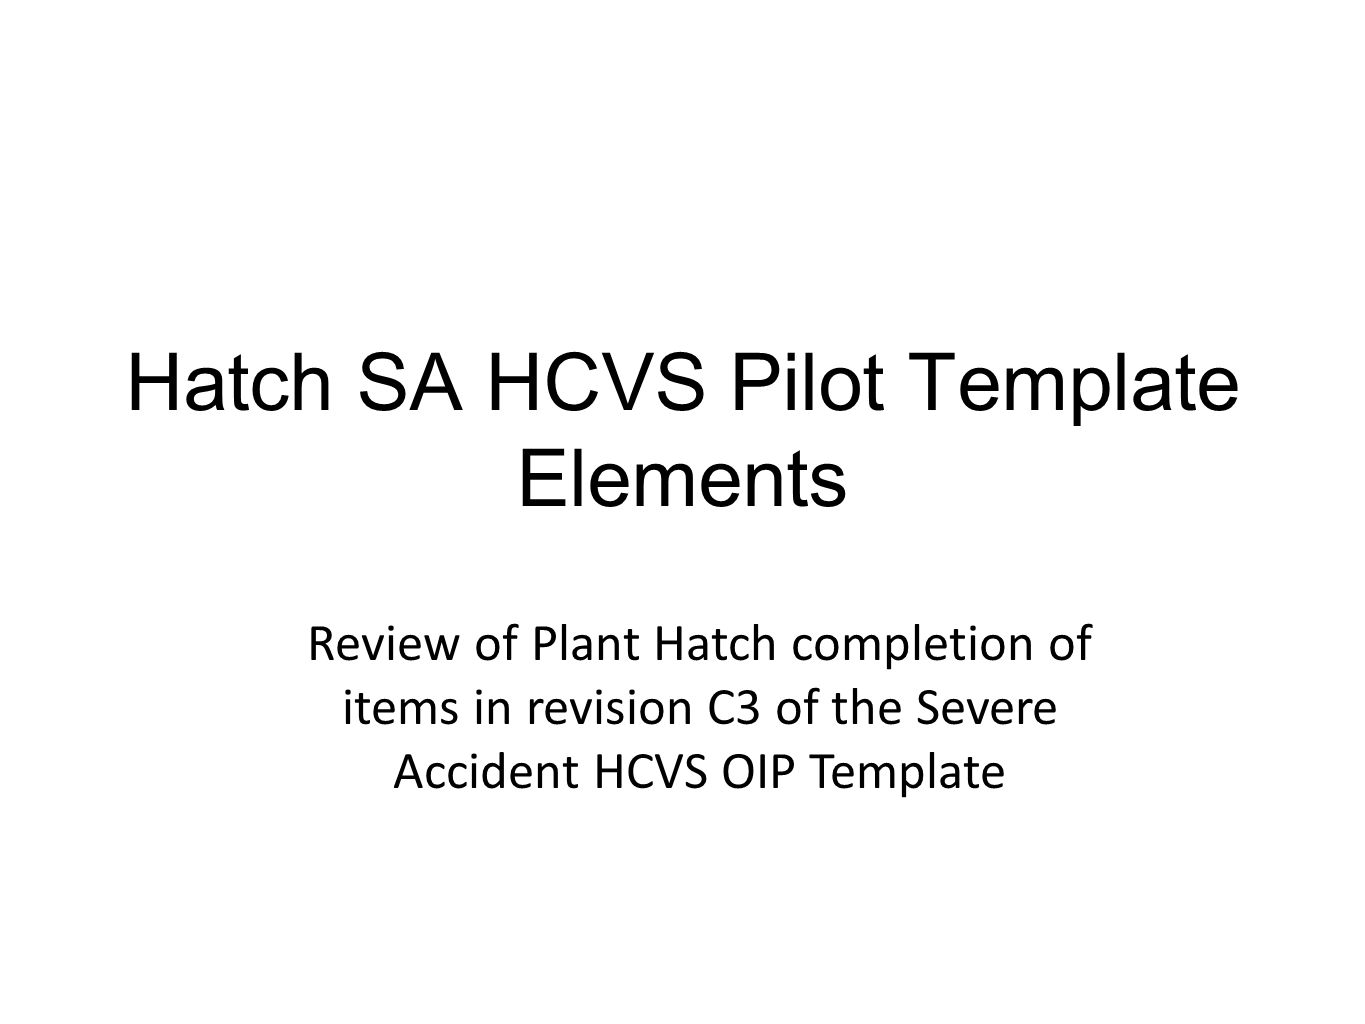 Hatch SA HCVS Pilot Template Elements Review of Plant Hatch completion of items in revision C3 of the Severe Accident HCVS OIP Template